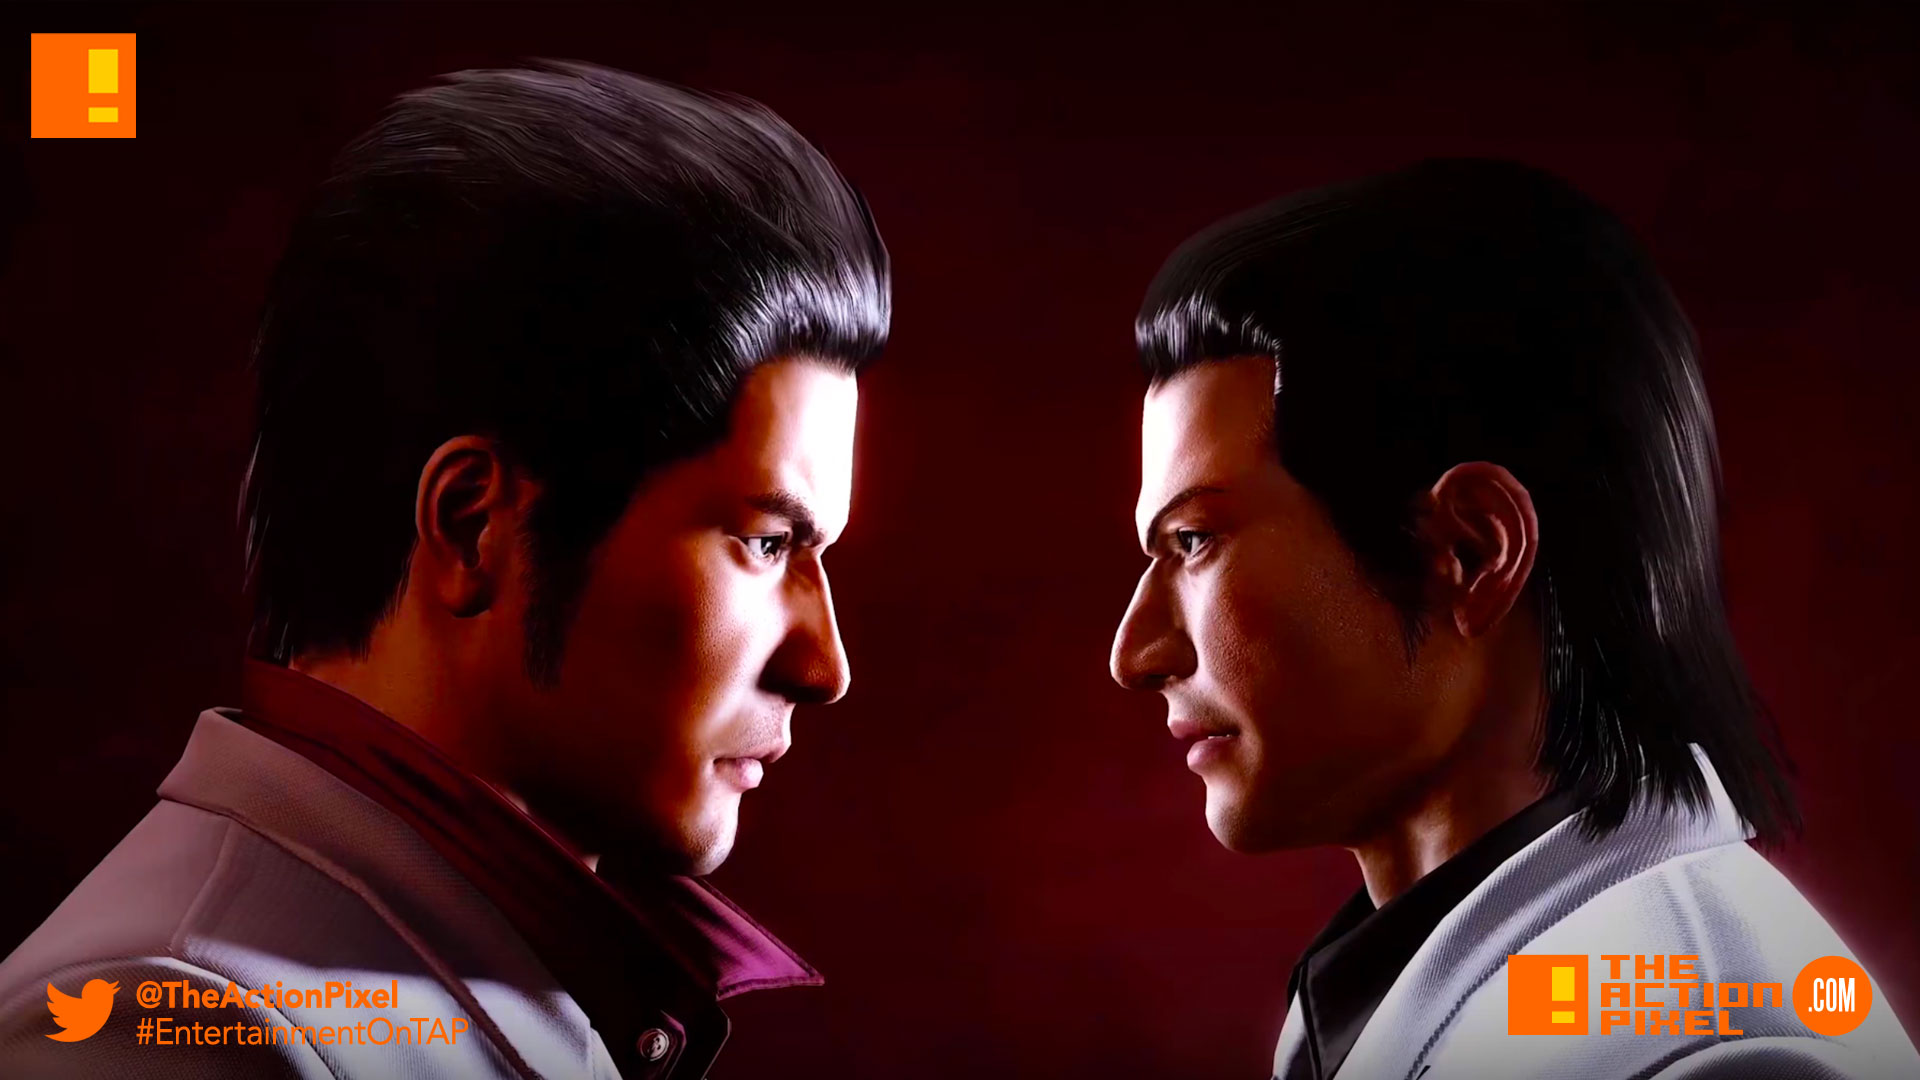 yakuza, launch trailer, Yakuza Kiwami, entertainment on tap, the action pixel